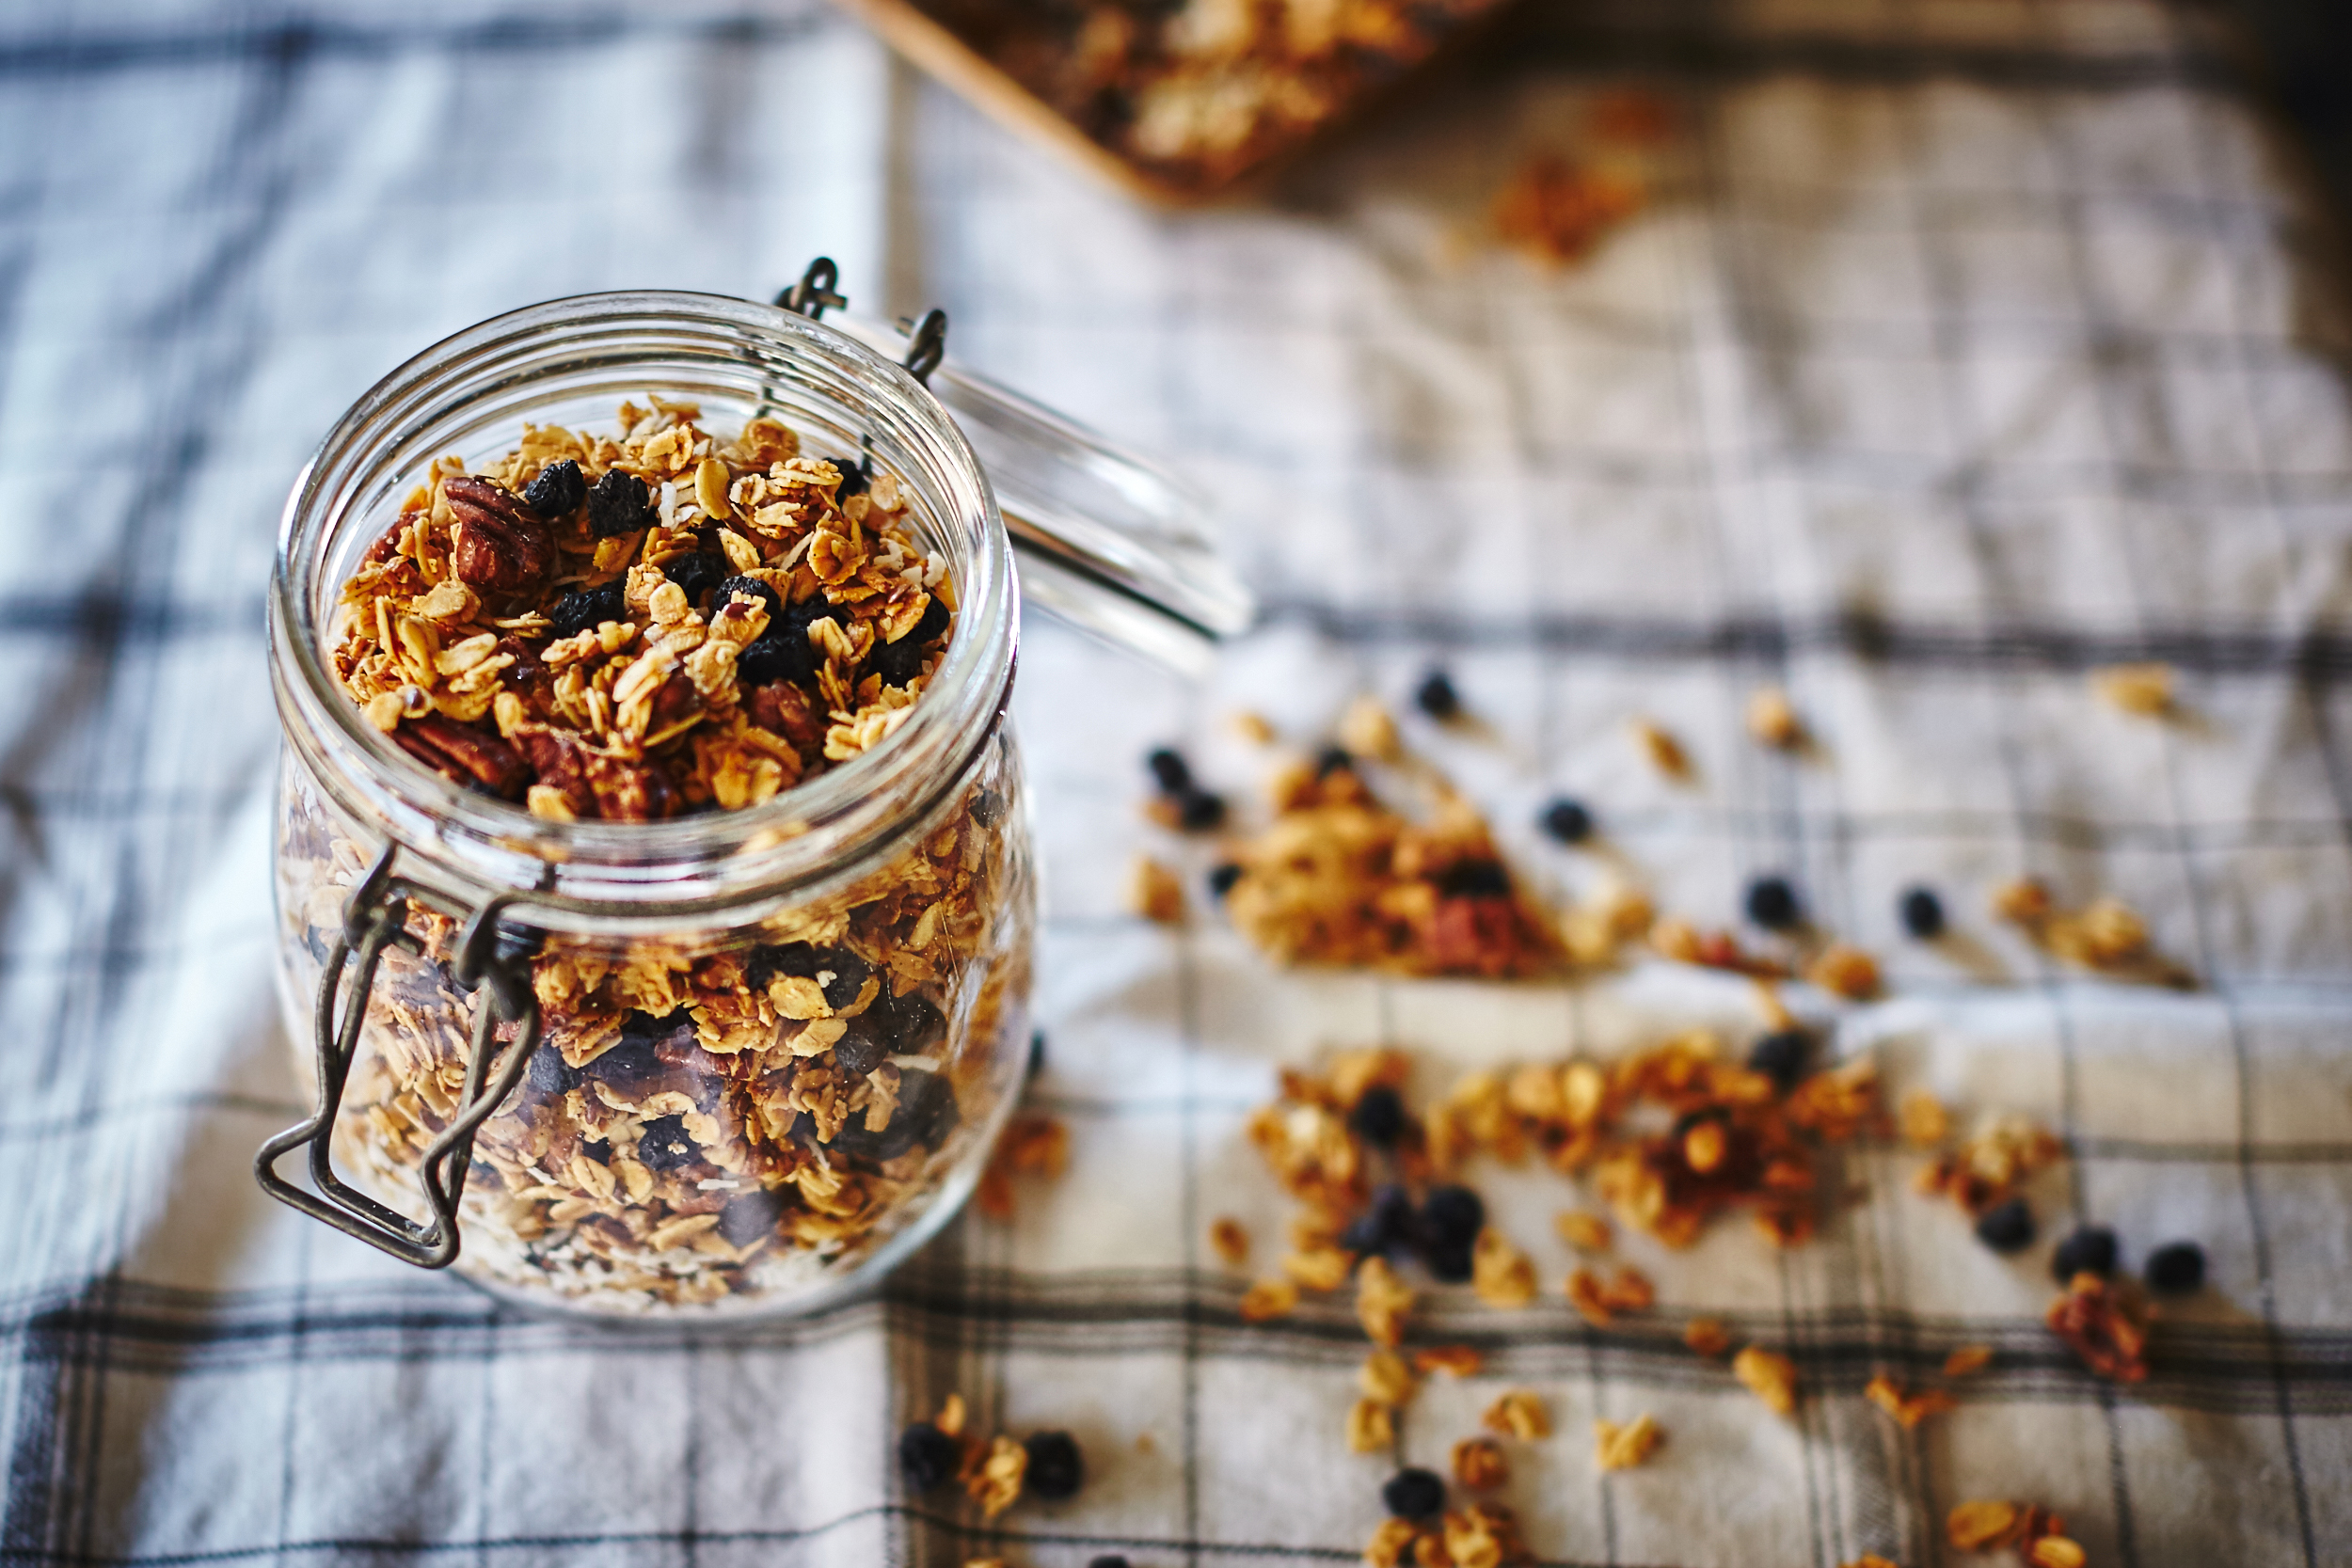 2015-0827 - BlueberryVanillaGranola_0183.jpg